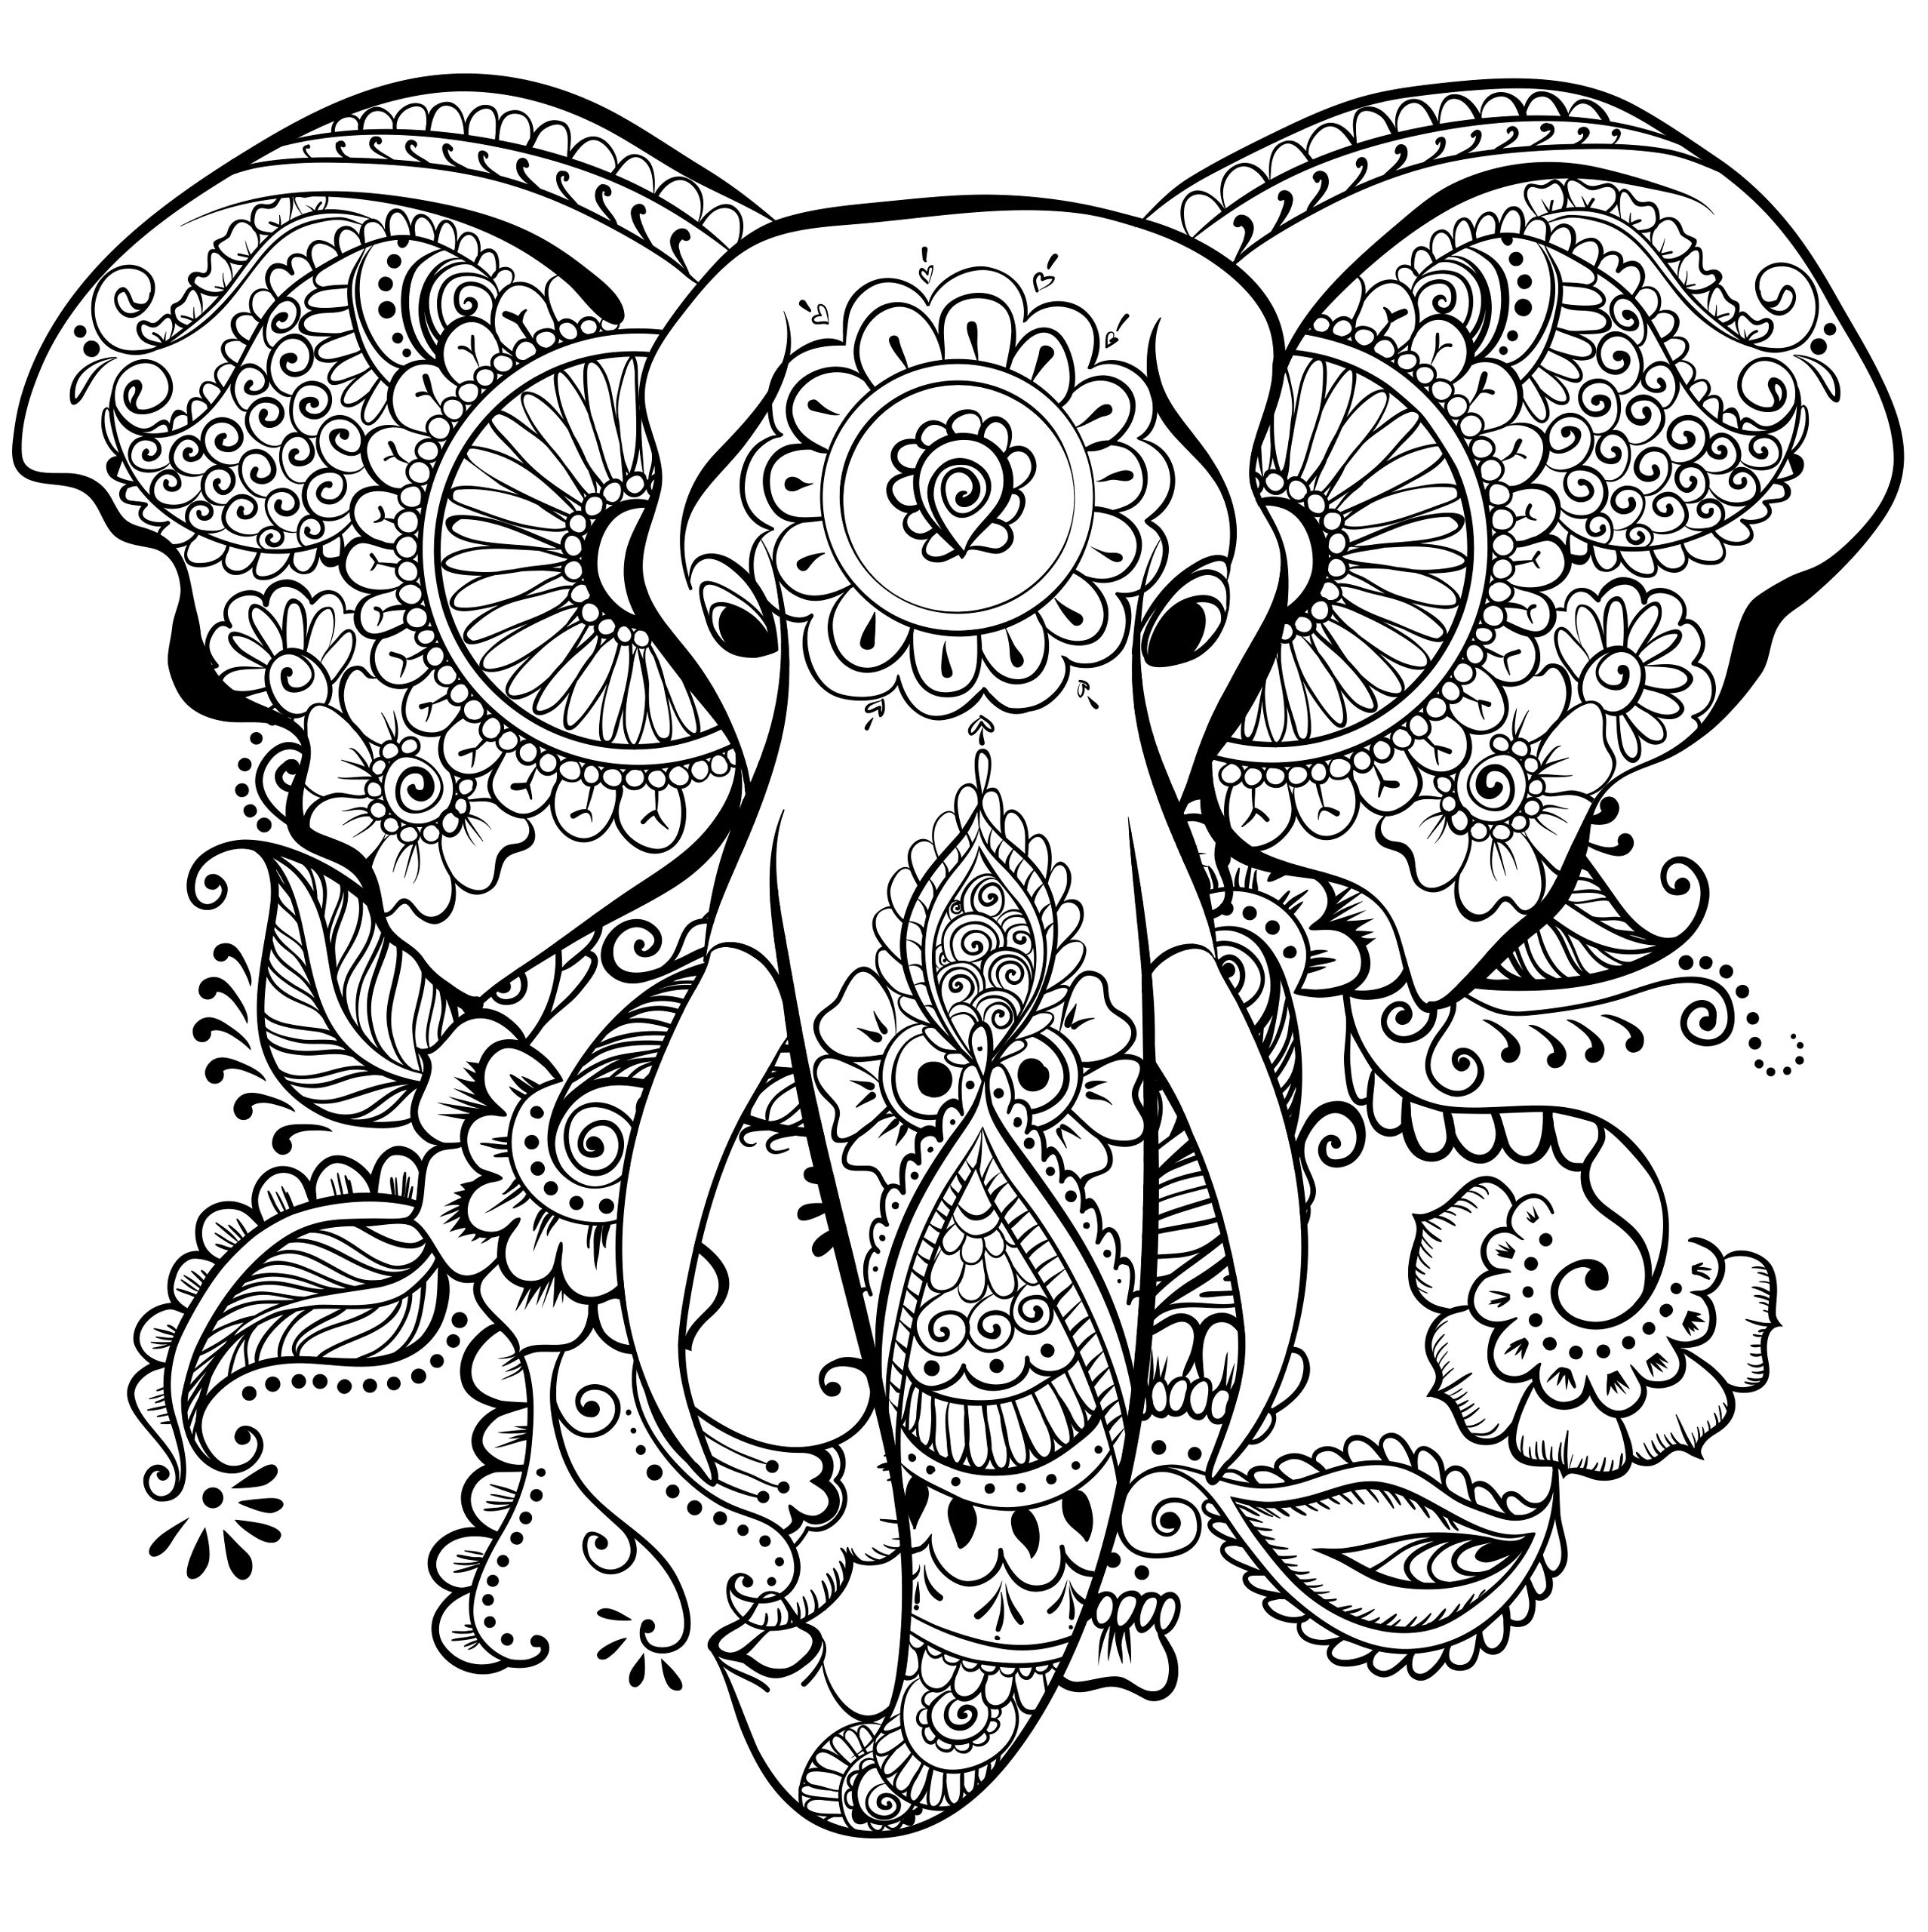 Free coloring pages for young adults - Wild At Heart Adult Coloring Book Stress Relieving Designs Artists Coloring Books Peter Pauper Press Davlin Publishing